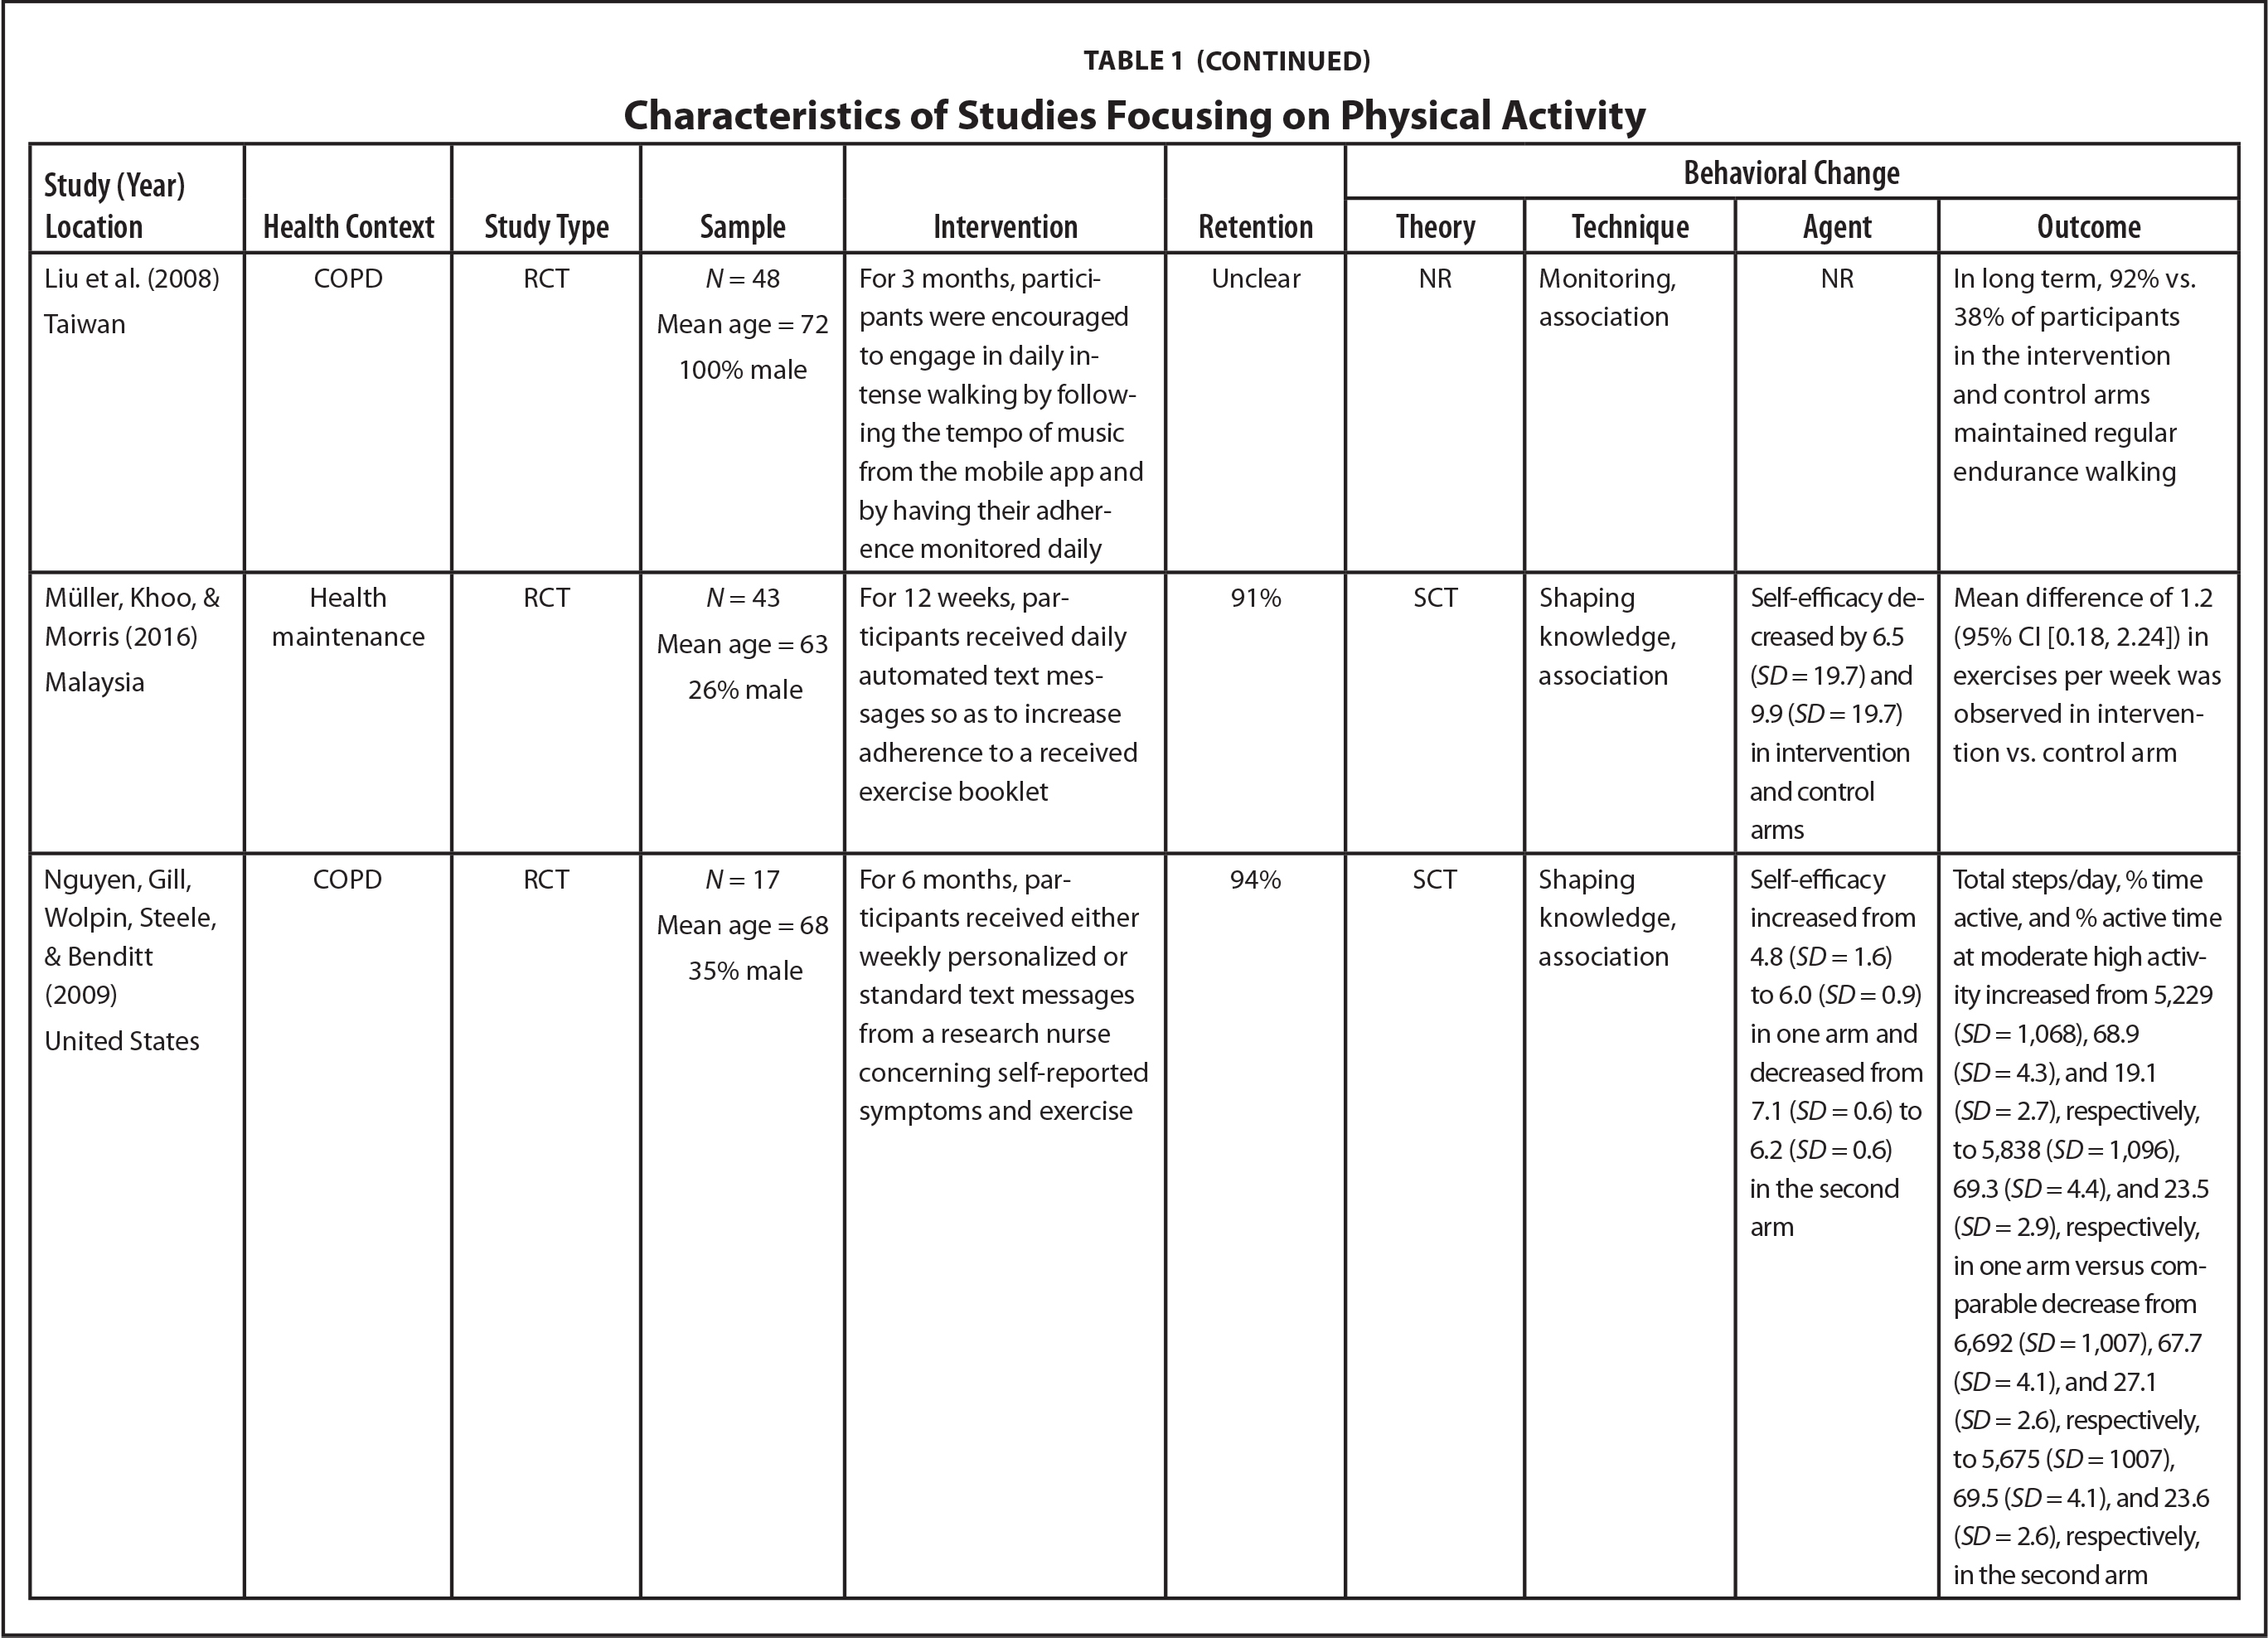 Characteristics of Studies Focusing on Physical Activity